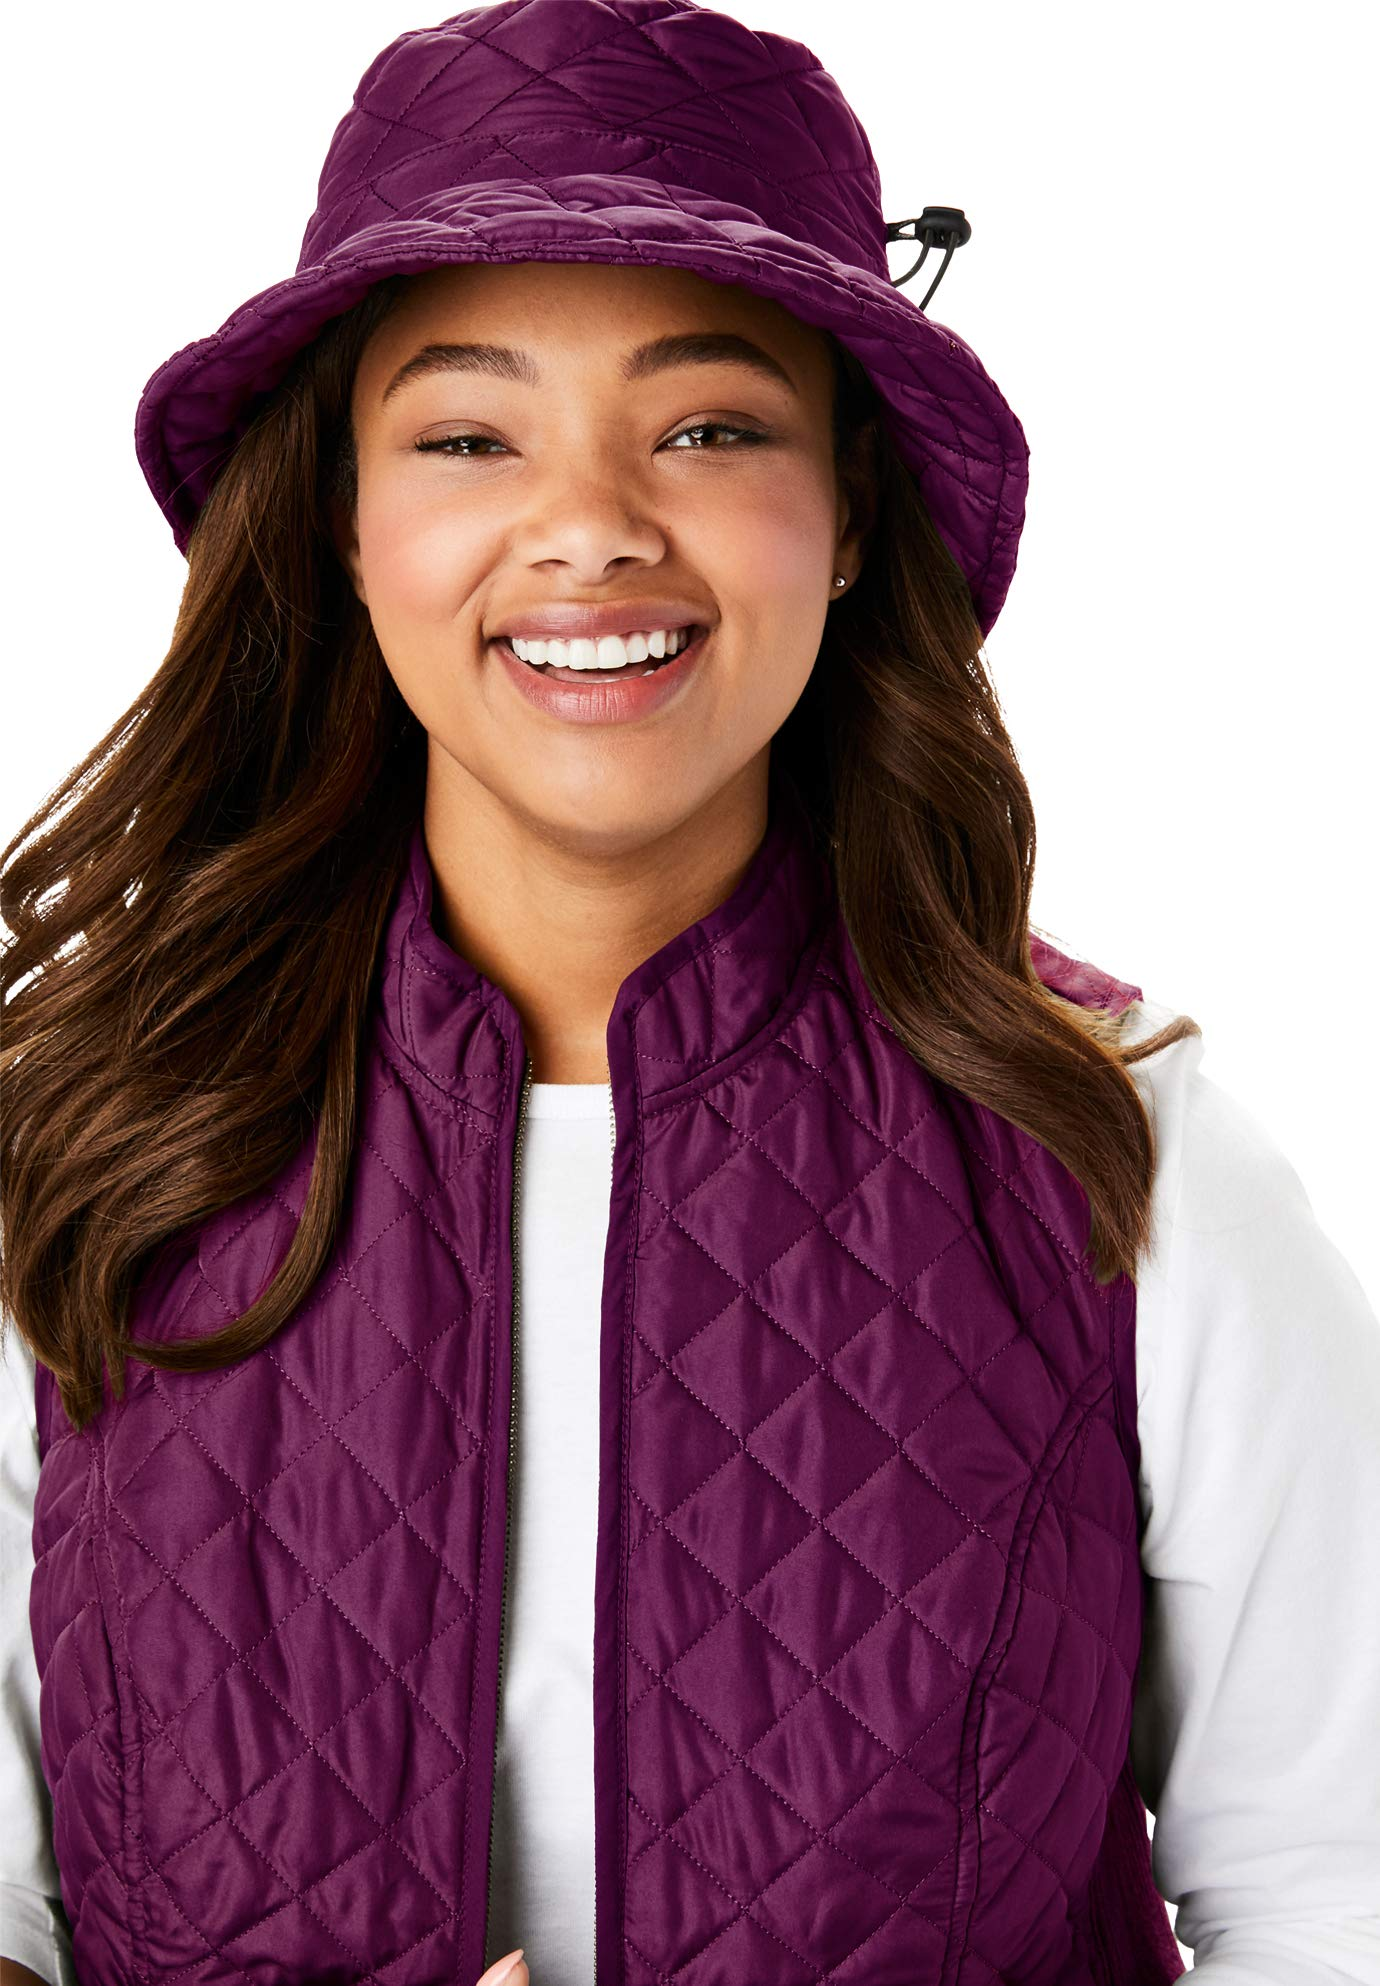 Woman Within Women's Plus Size Quilted Bucket Hat - Dark Berry, One Size by Woman Within